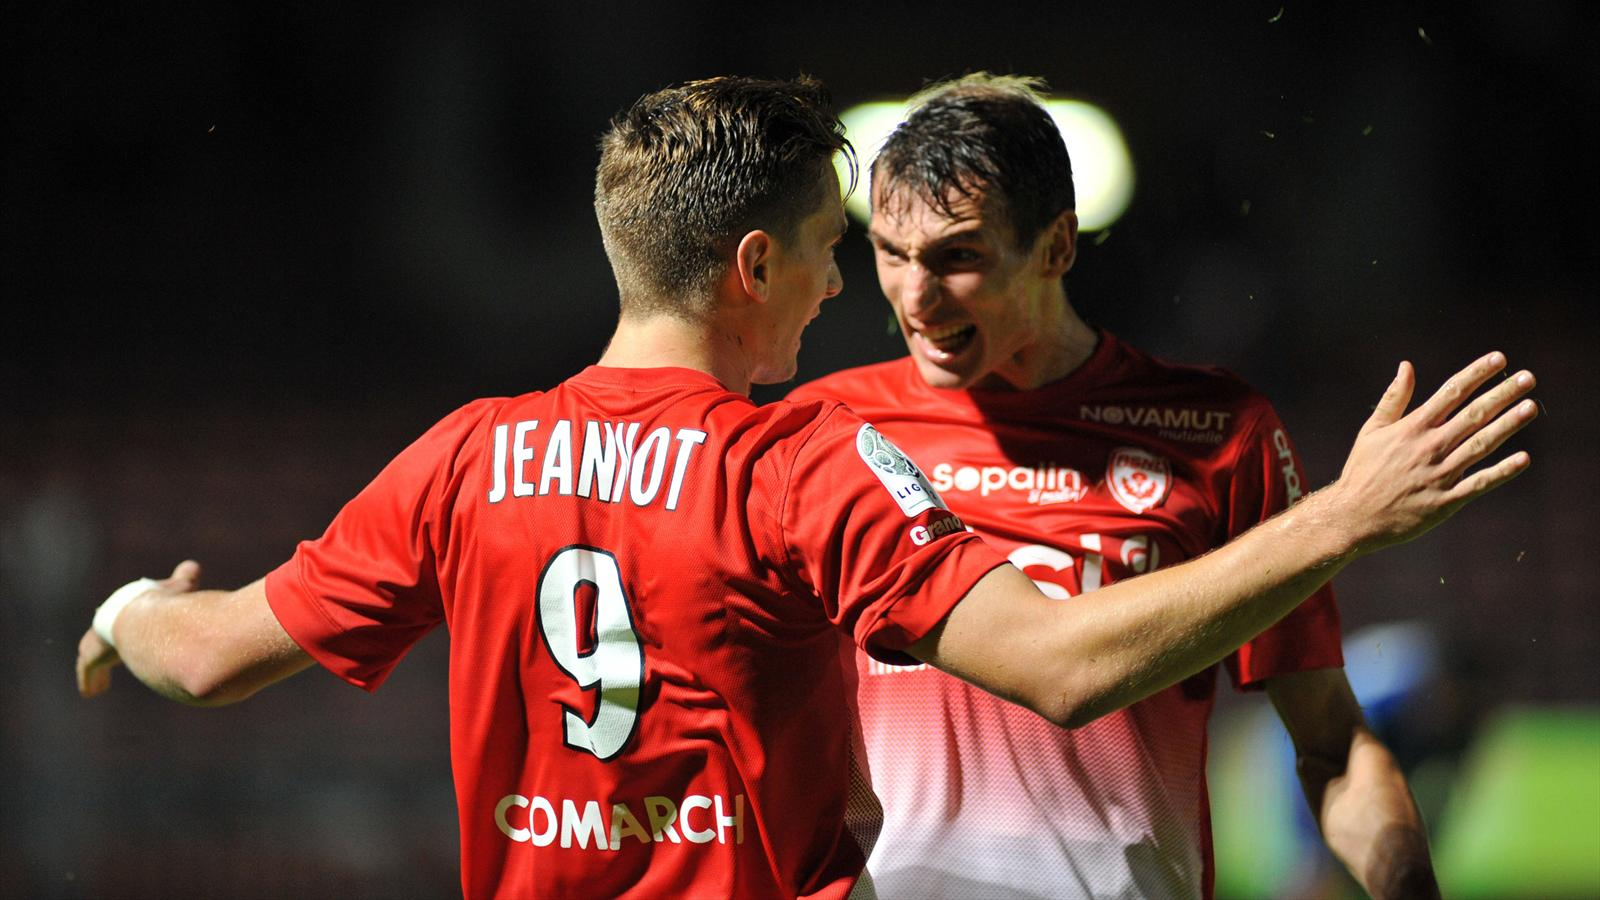 Match AS Nancy-Lorraine vs Le Havre en direct live streaming